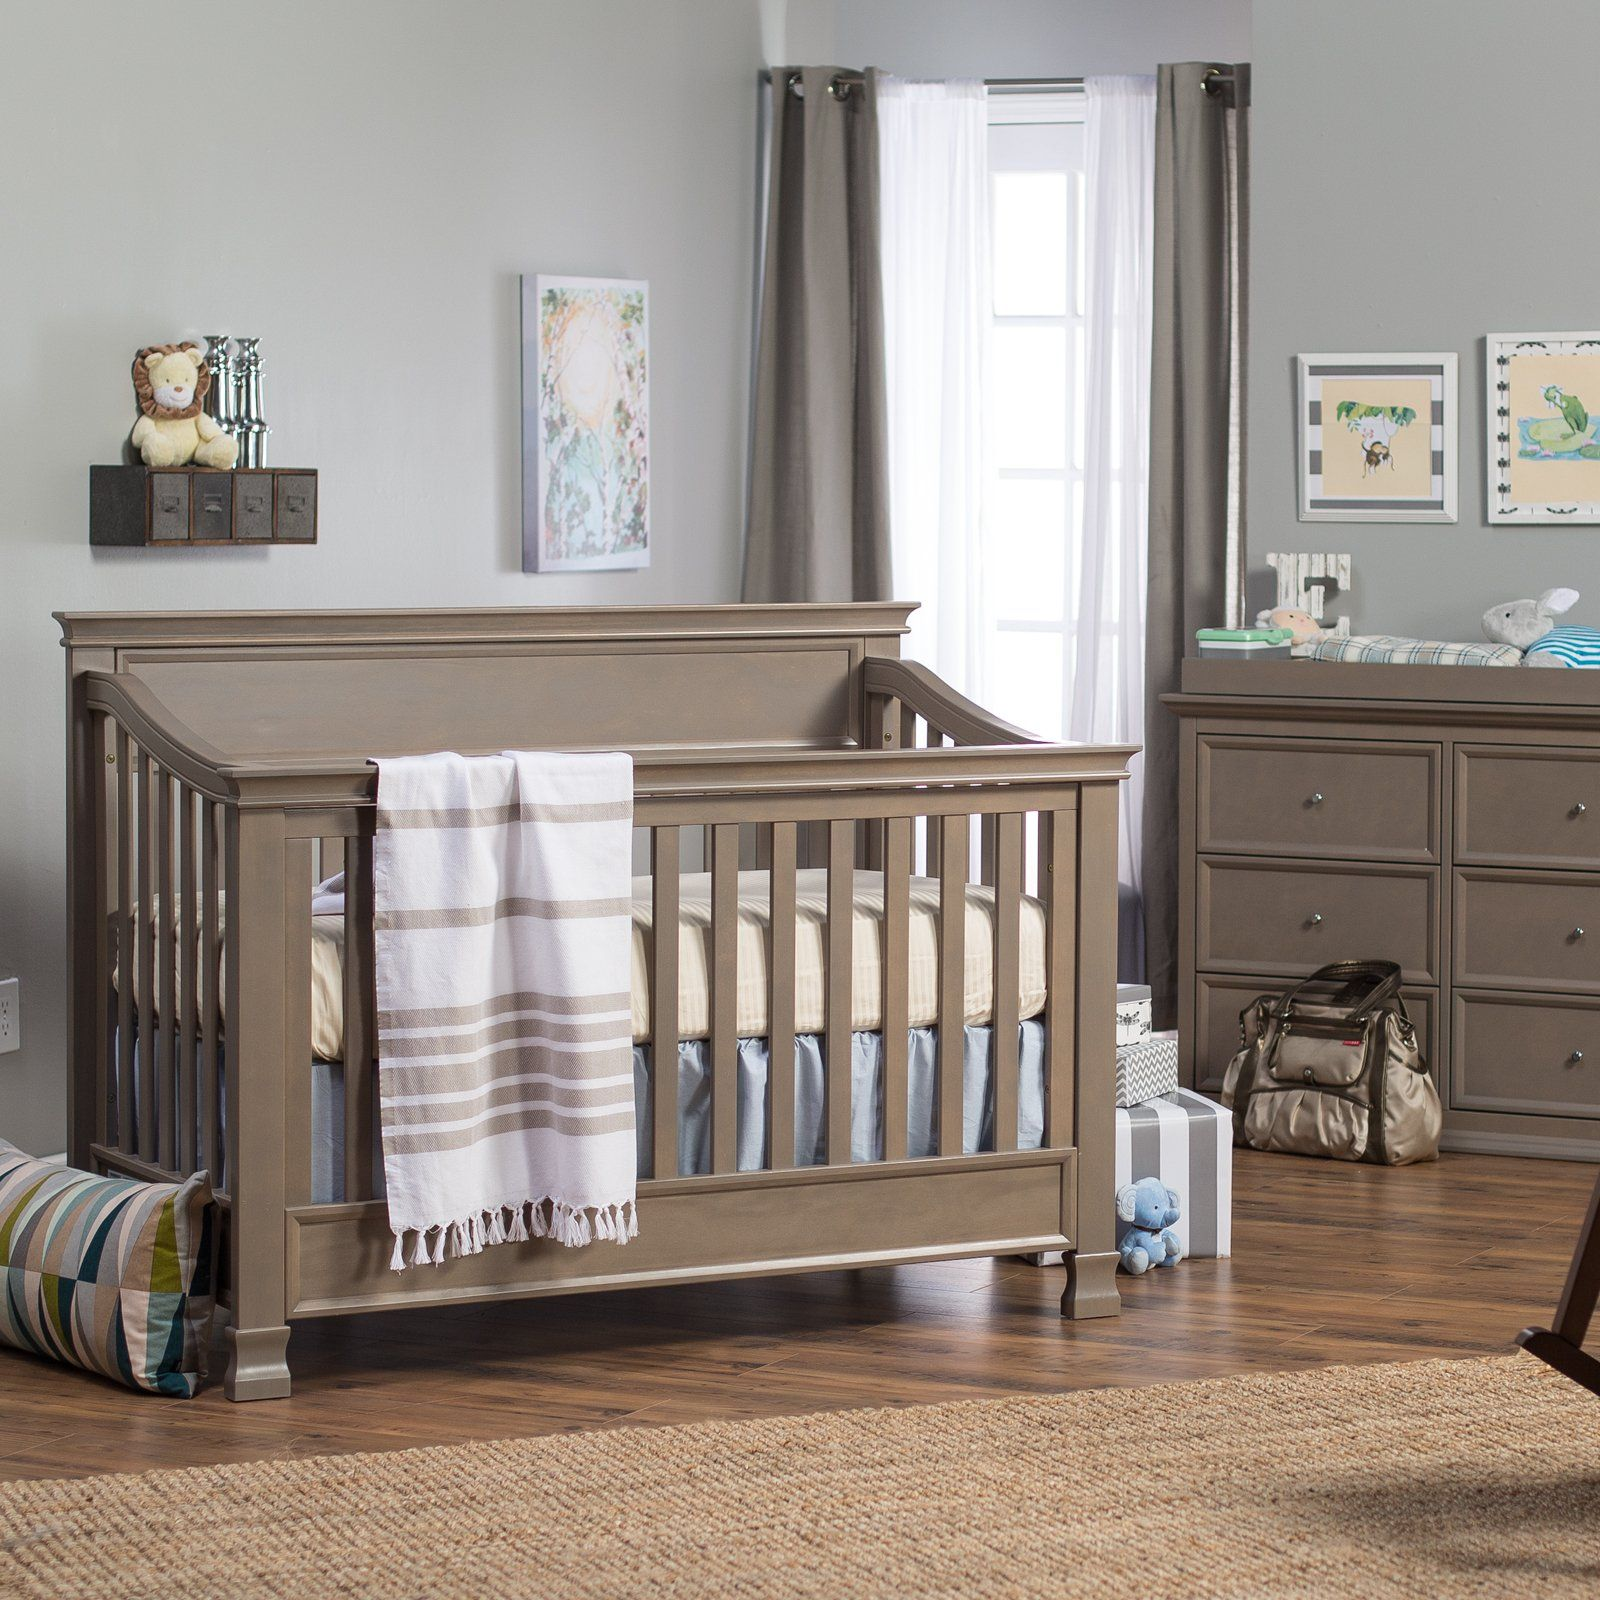 Million Dollar Baby Clic Foothill 4 In 1 Crib Collection